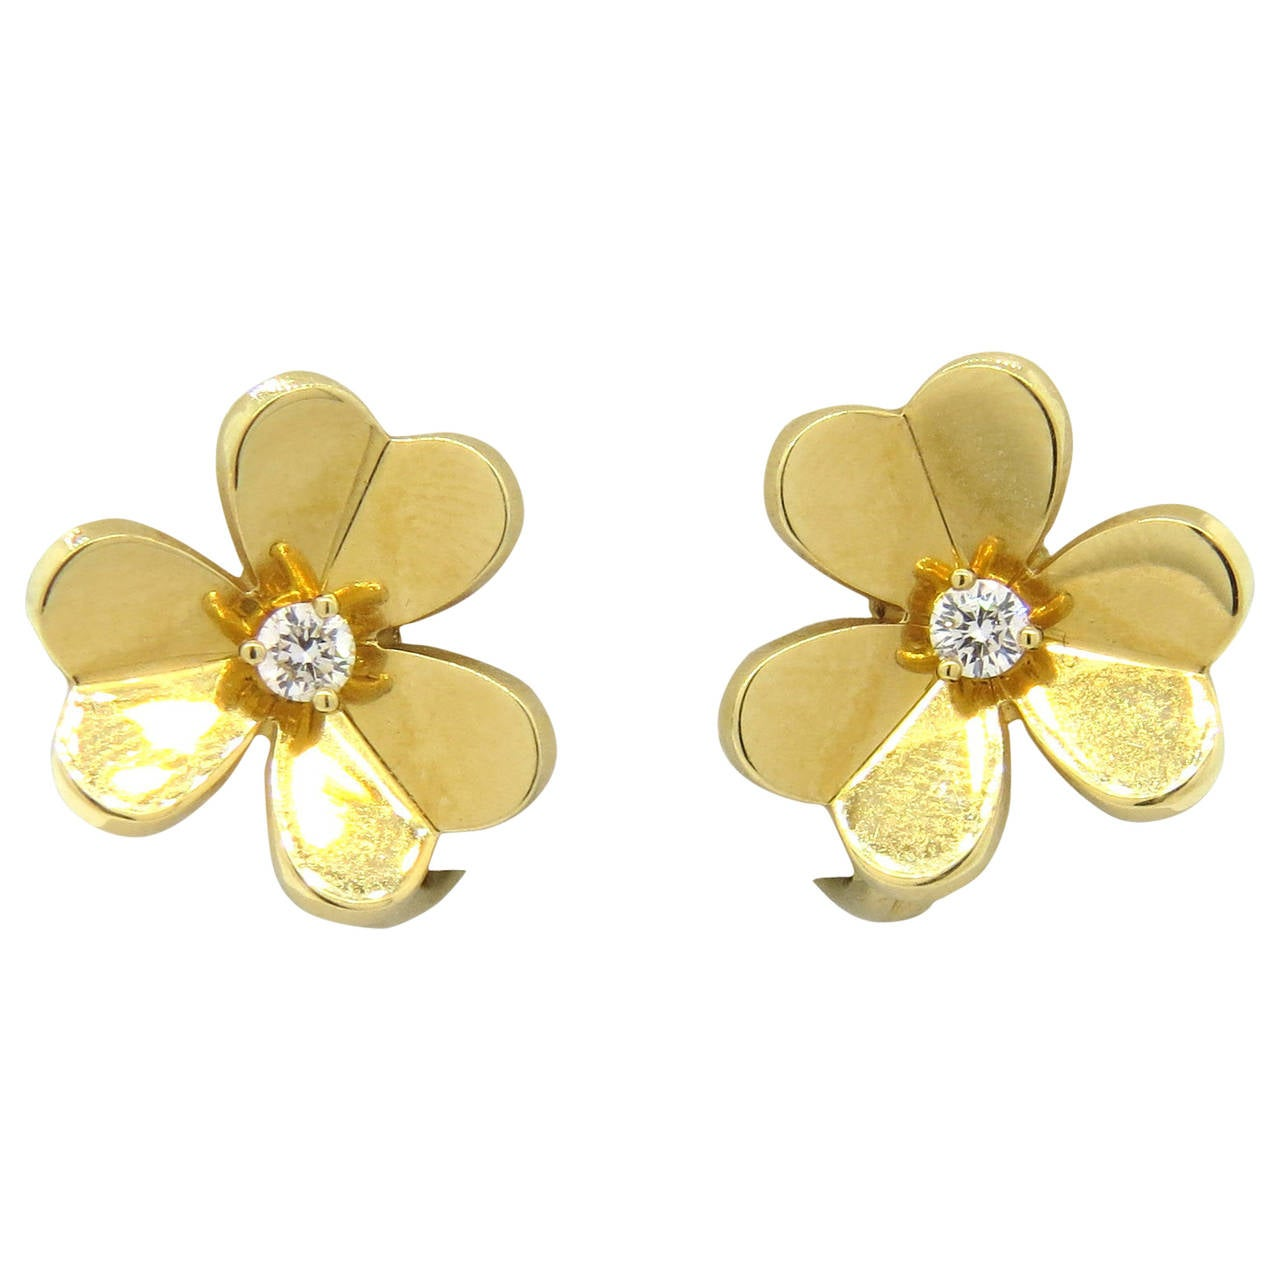 Van Cleef & Arpels Frivole Diamond Gold Flower Earrings 1